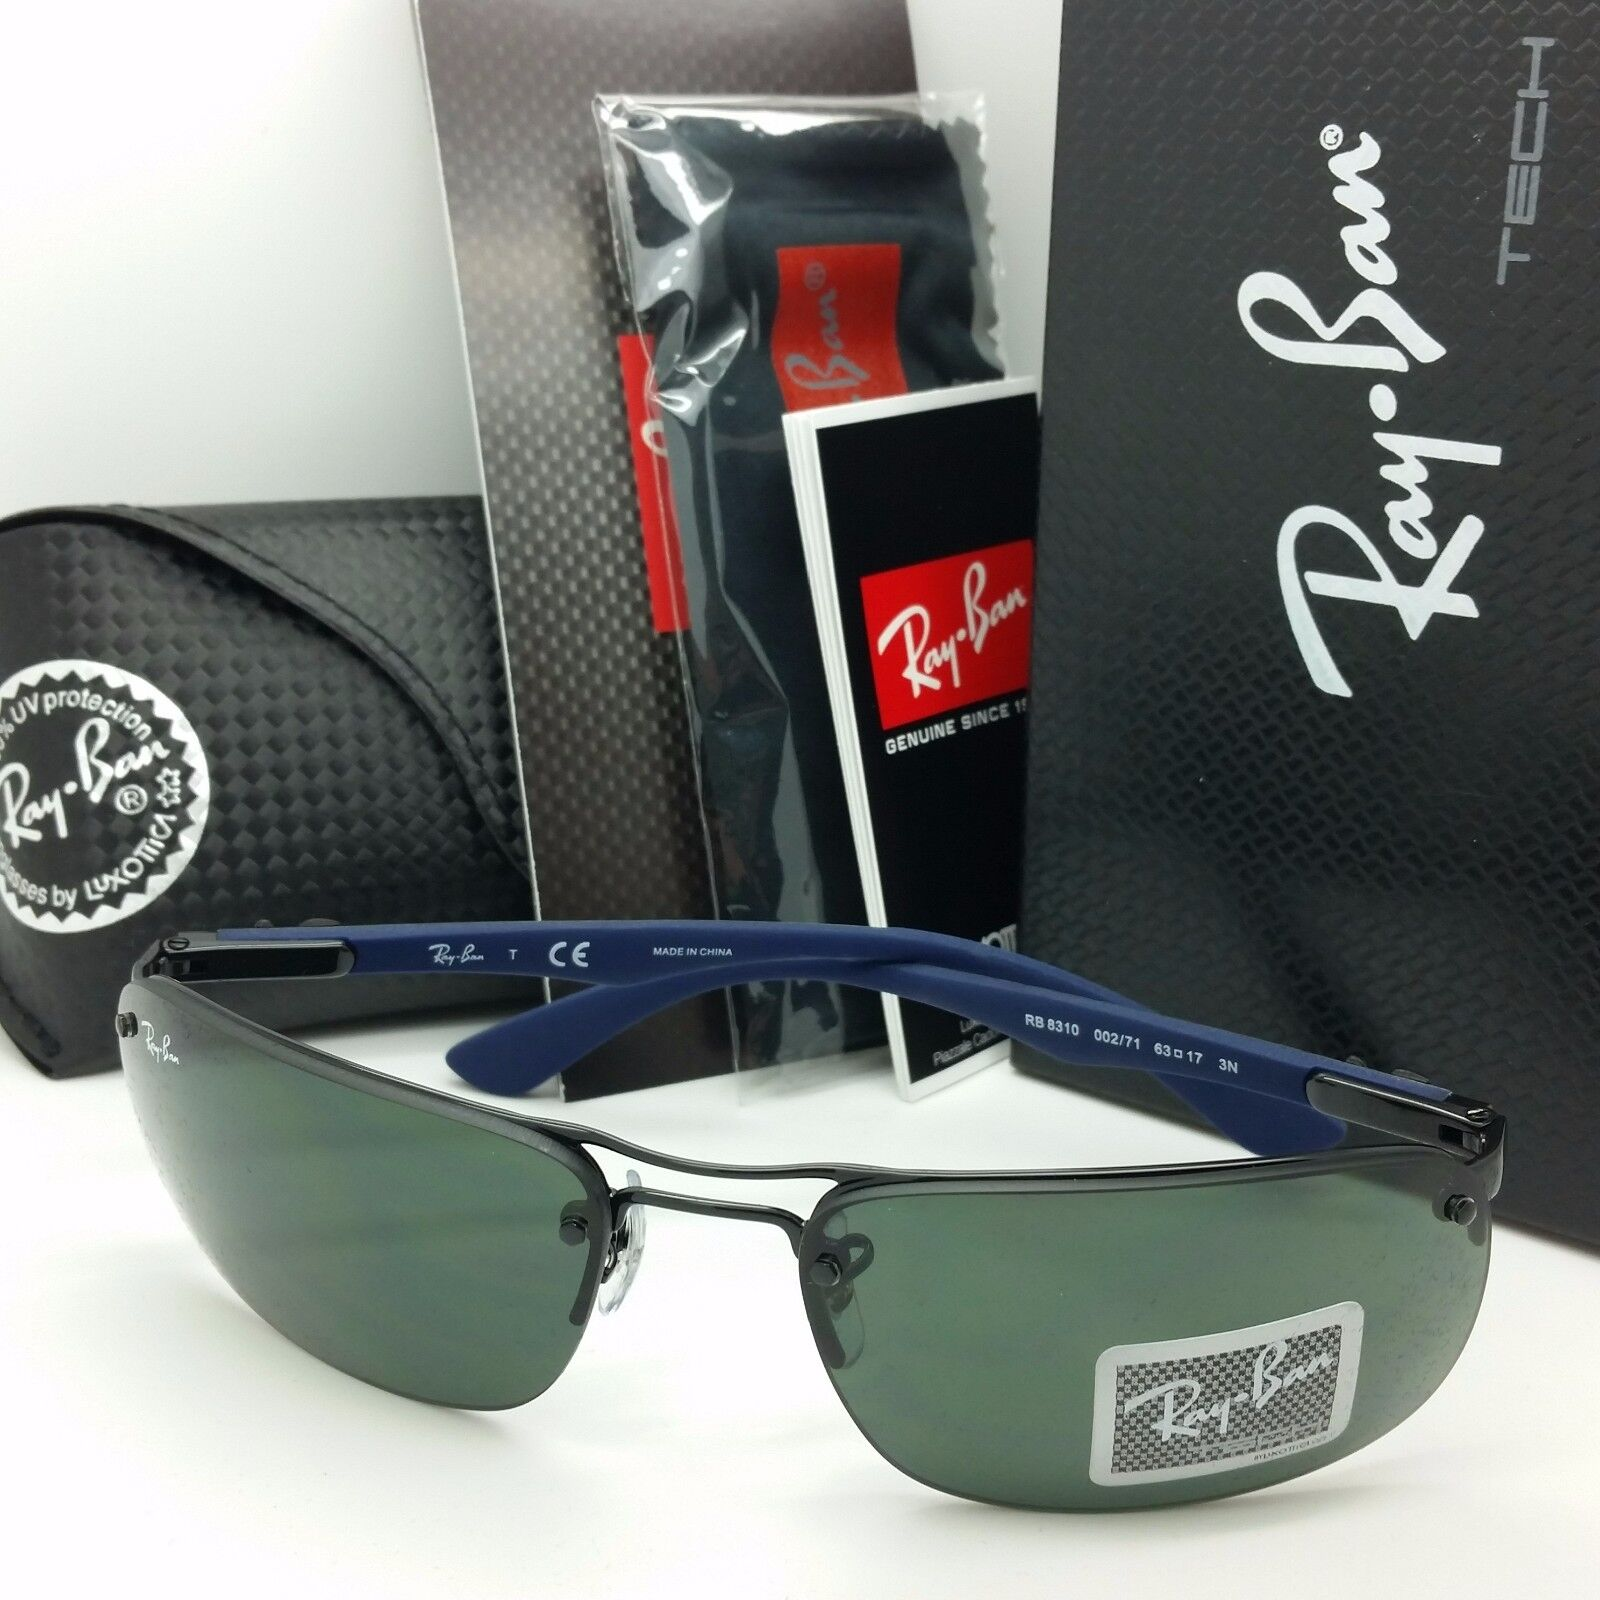 ac90fd93b9 UPC 805289742890 product image for Rayban Sunglasses Rb8310 002 71 63 Tech  Carbon Fiber Wire ...